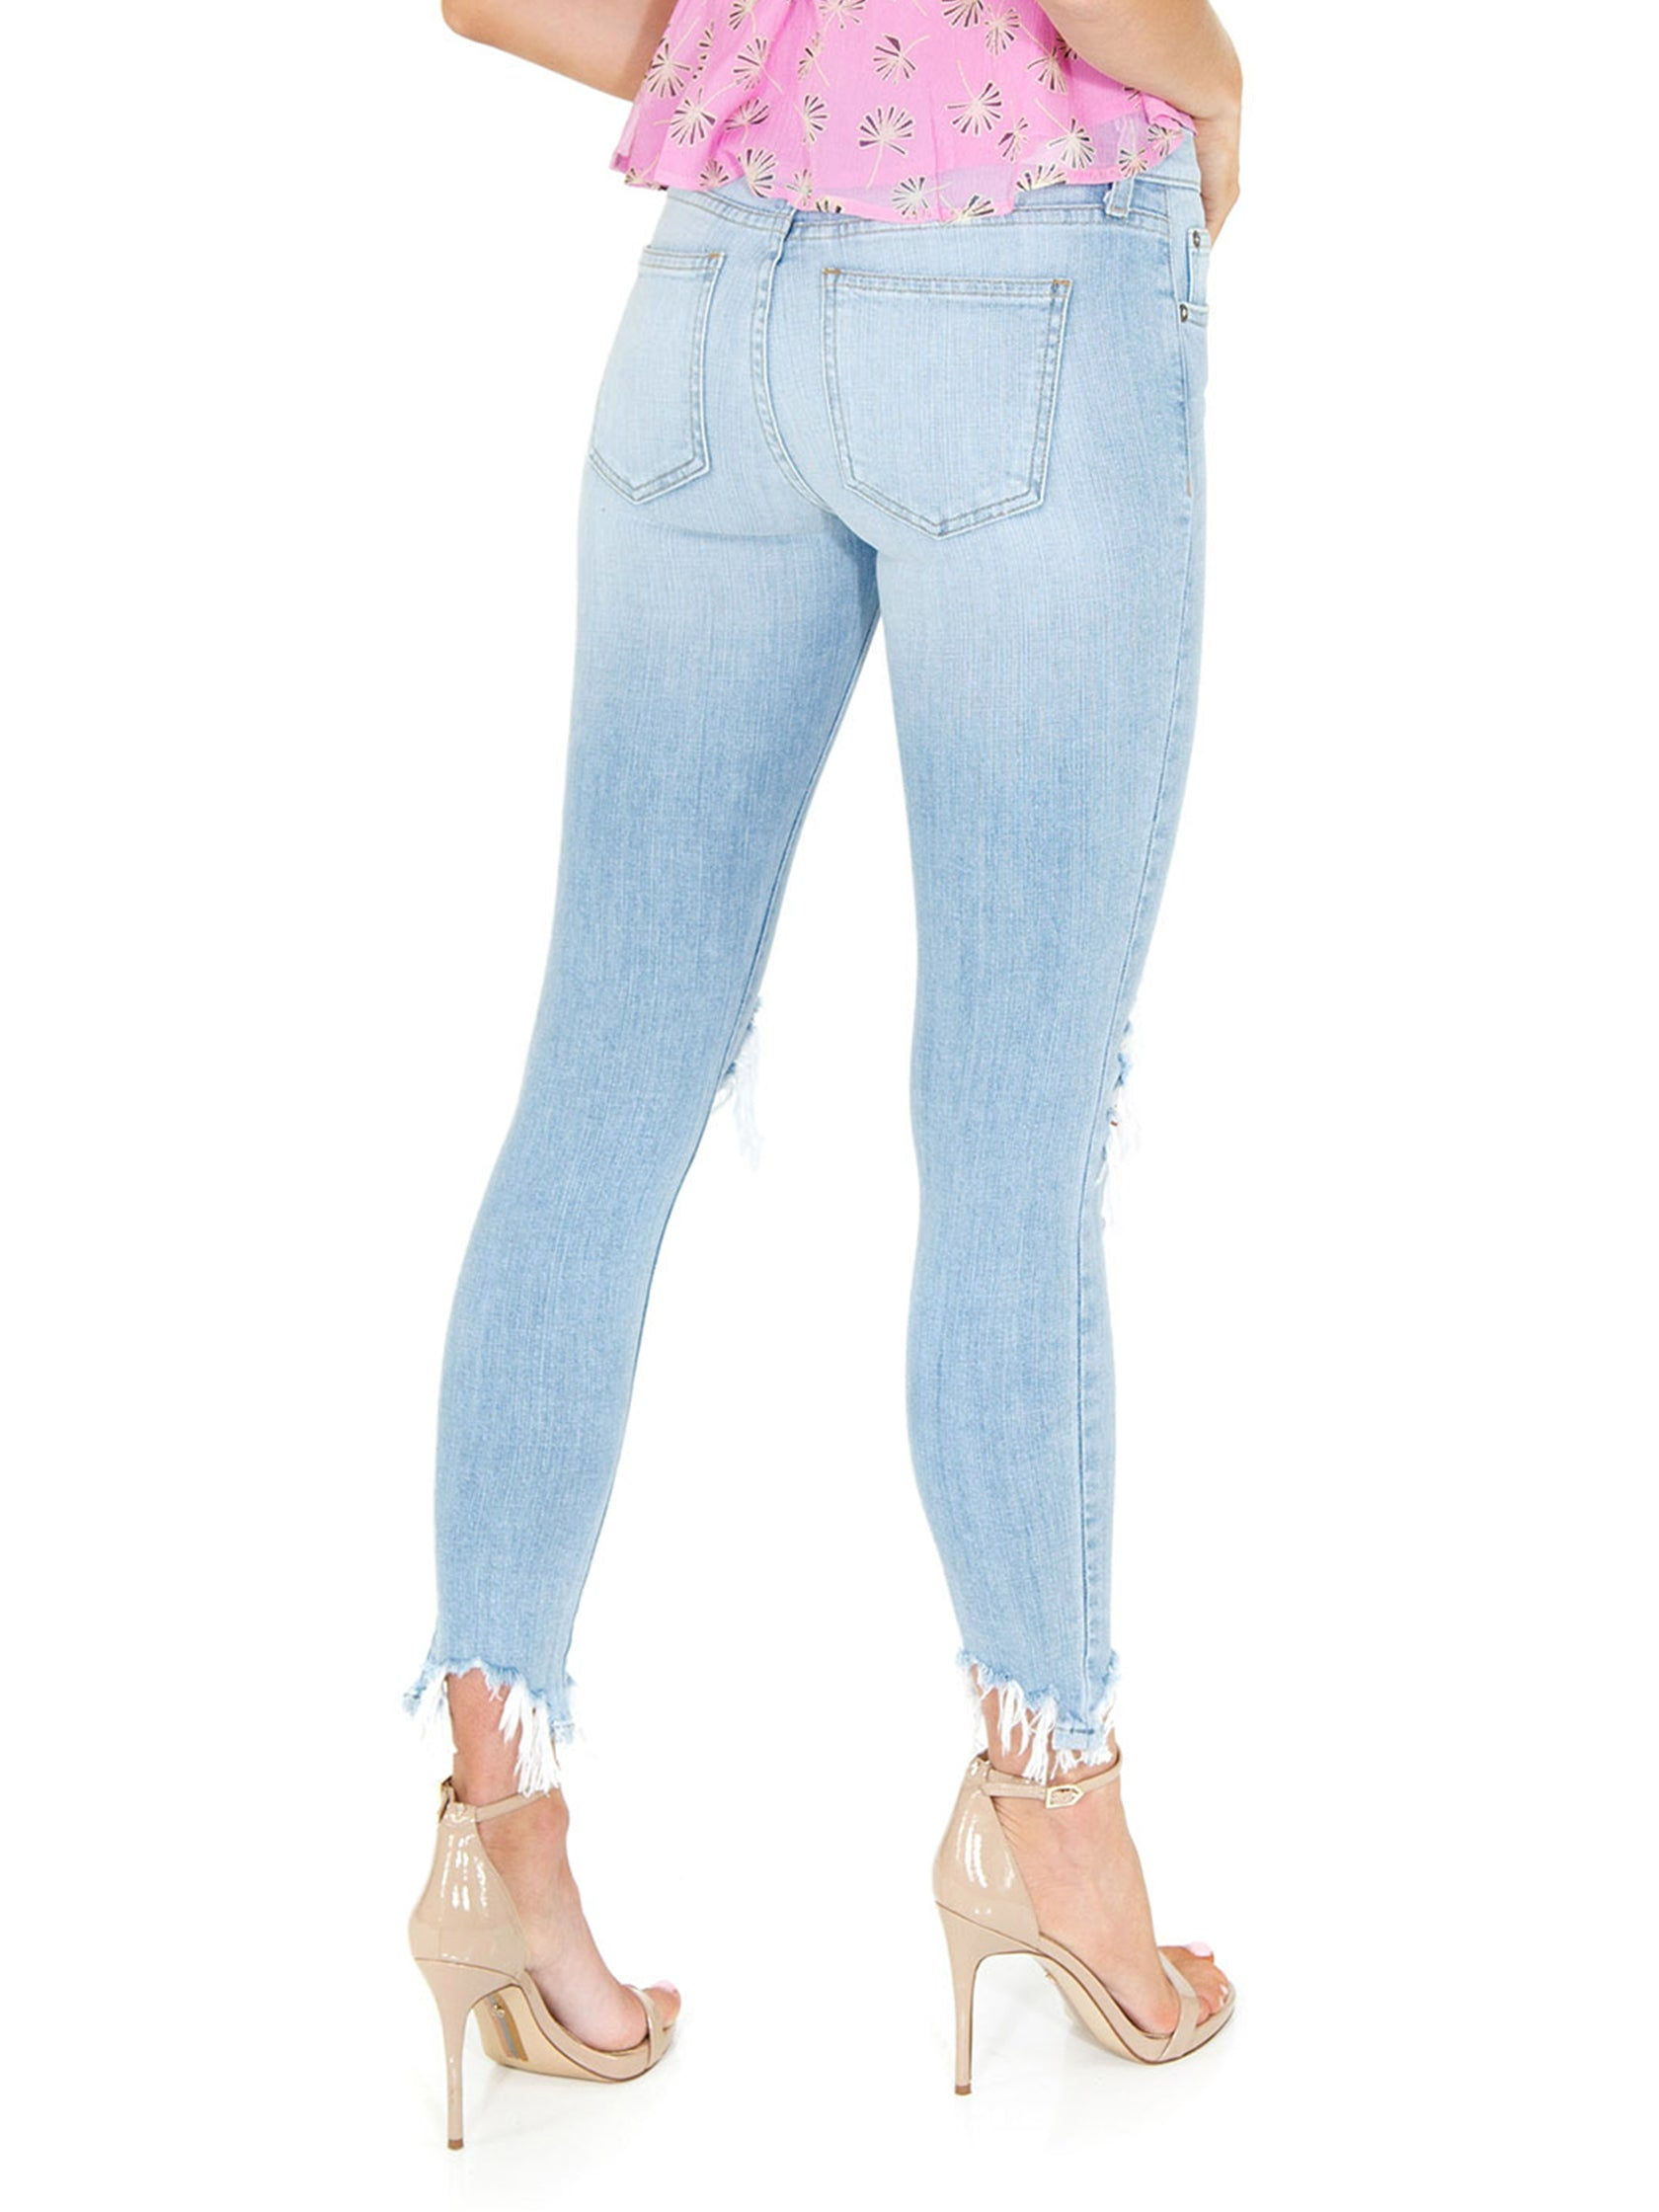 Women outfit in a denim rental from PISTOLA called Audrey Mid Rise Skinny Jeans